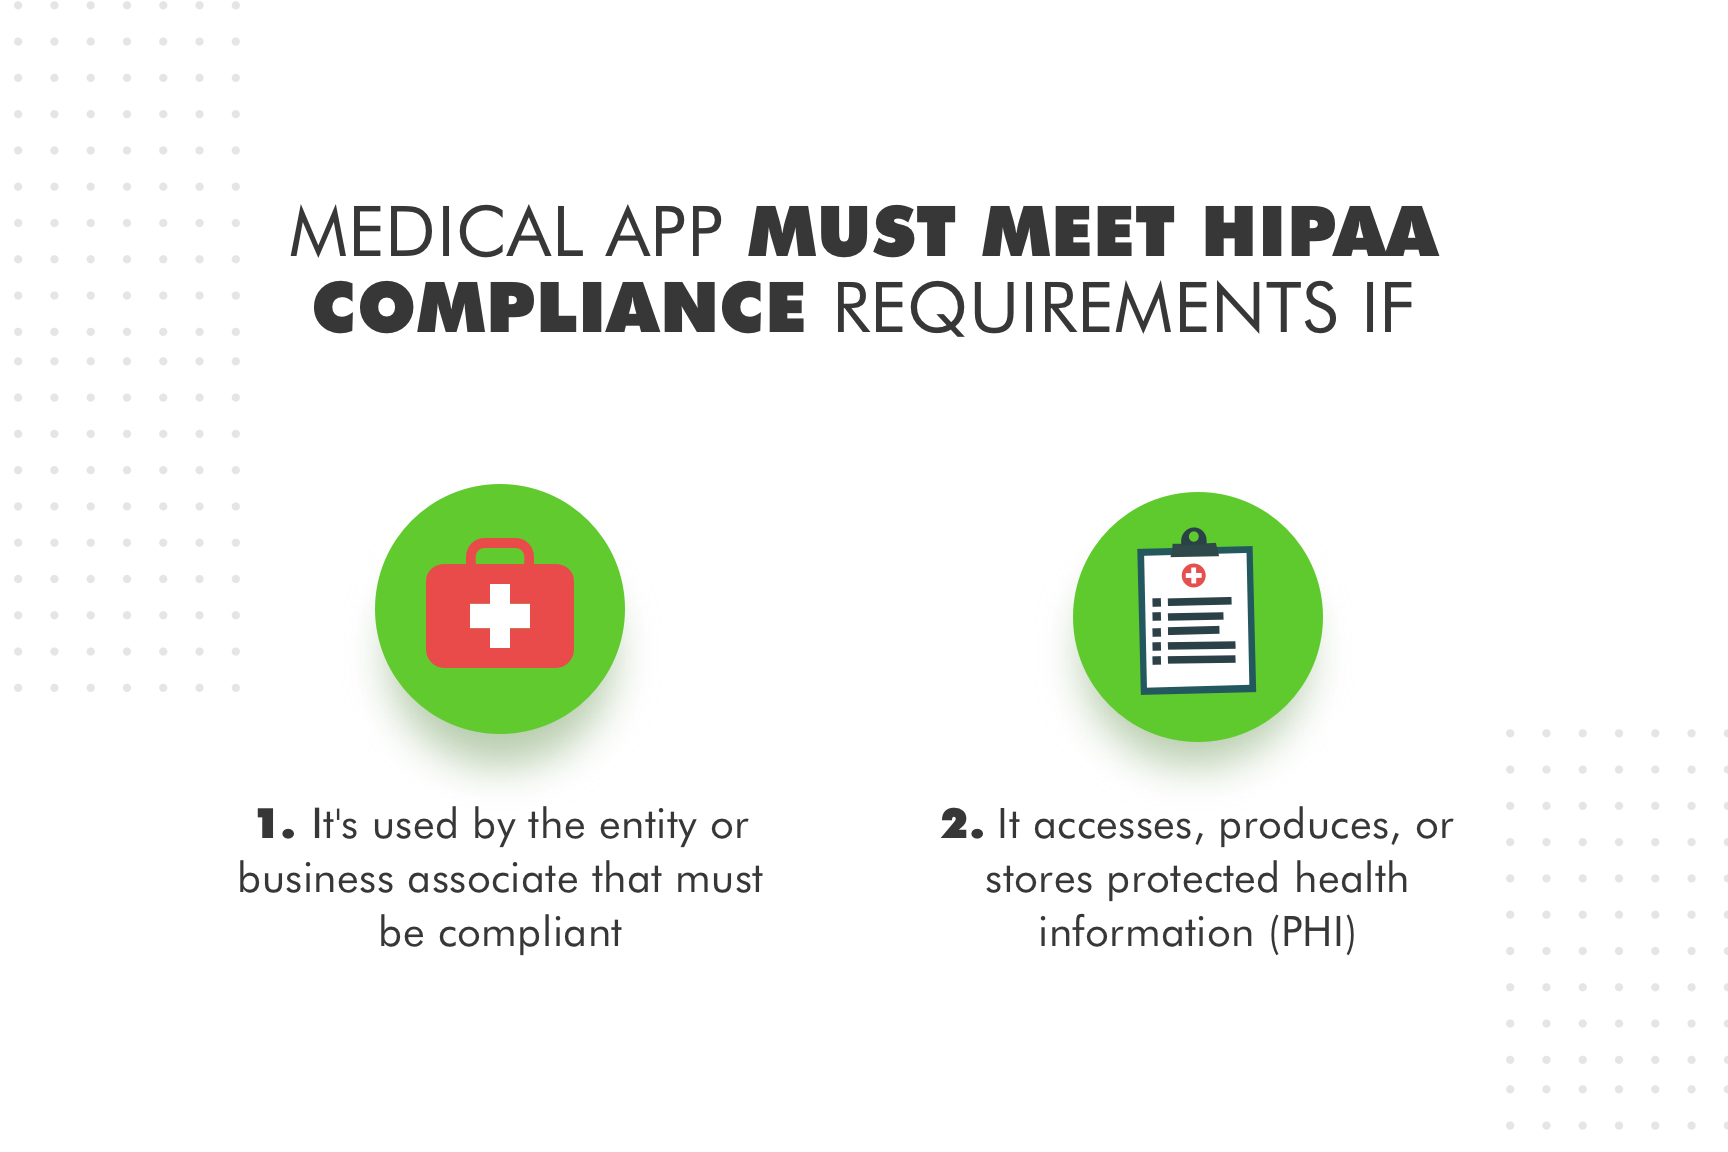 Medical App HIPAA requirements